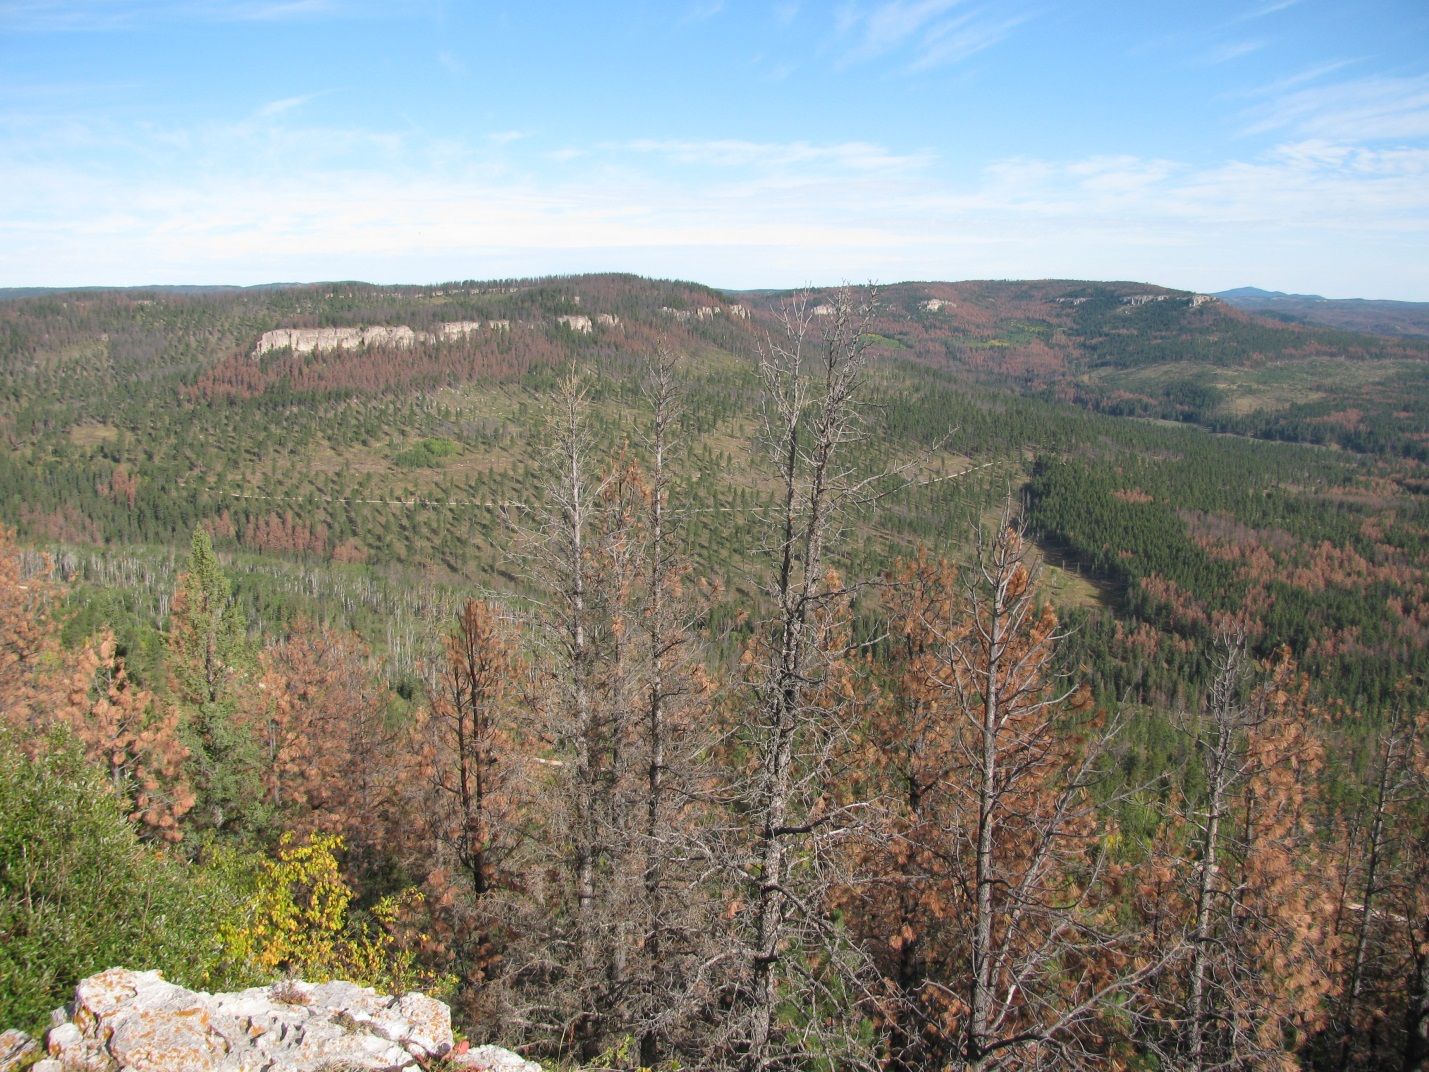 mountains with pine beetle killed trees with no needles mixed in with green forest